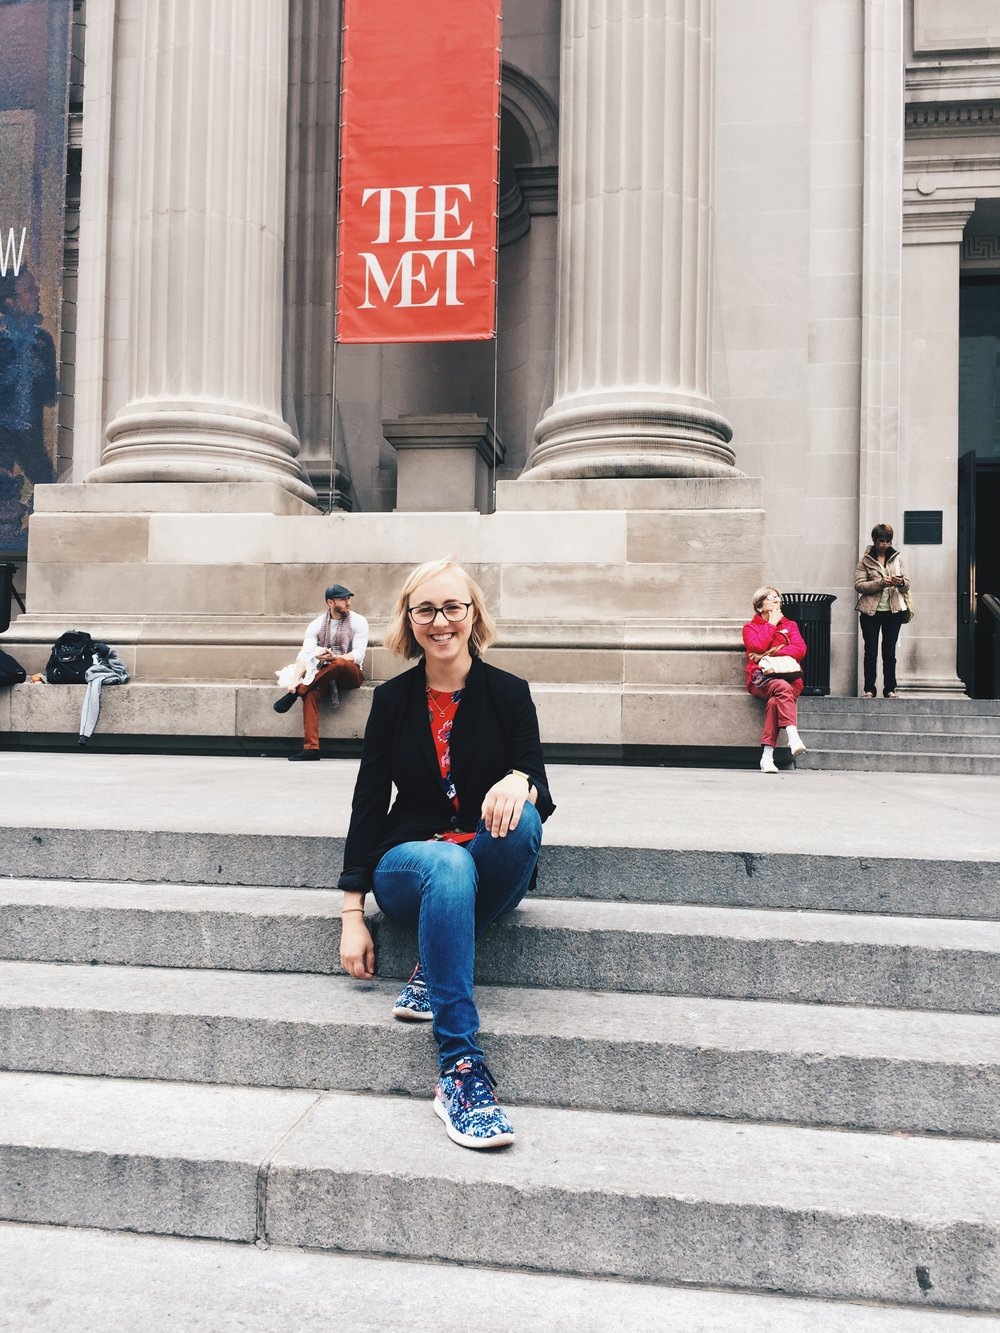 I spent a wonderful day at the Metropolitan Museum of Art. One of the best parts of traveling alone is getting to wander museums at your own ideal pace.